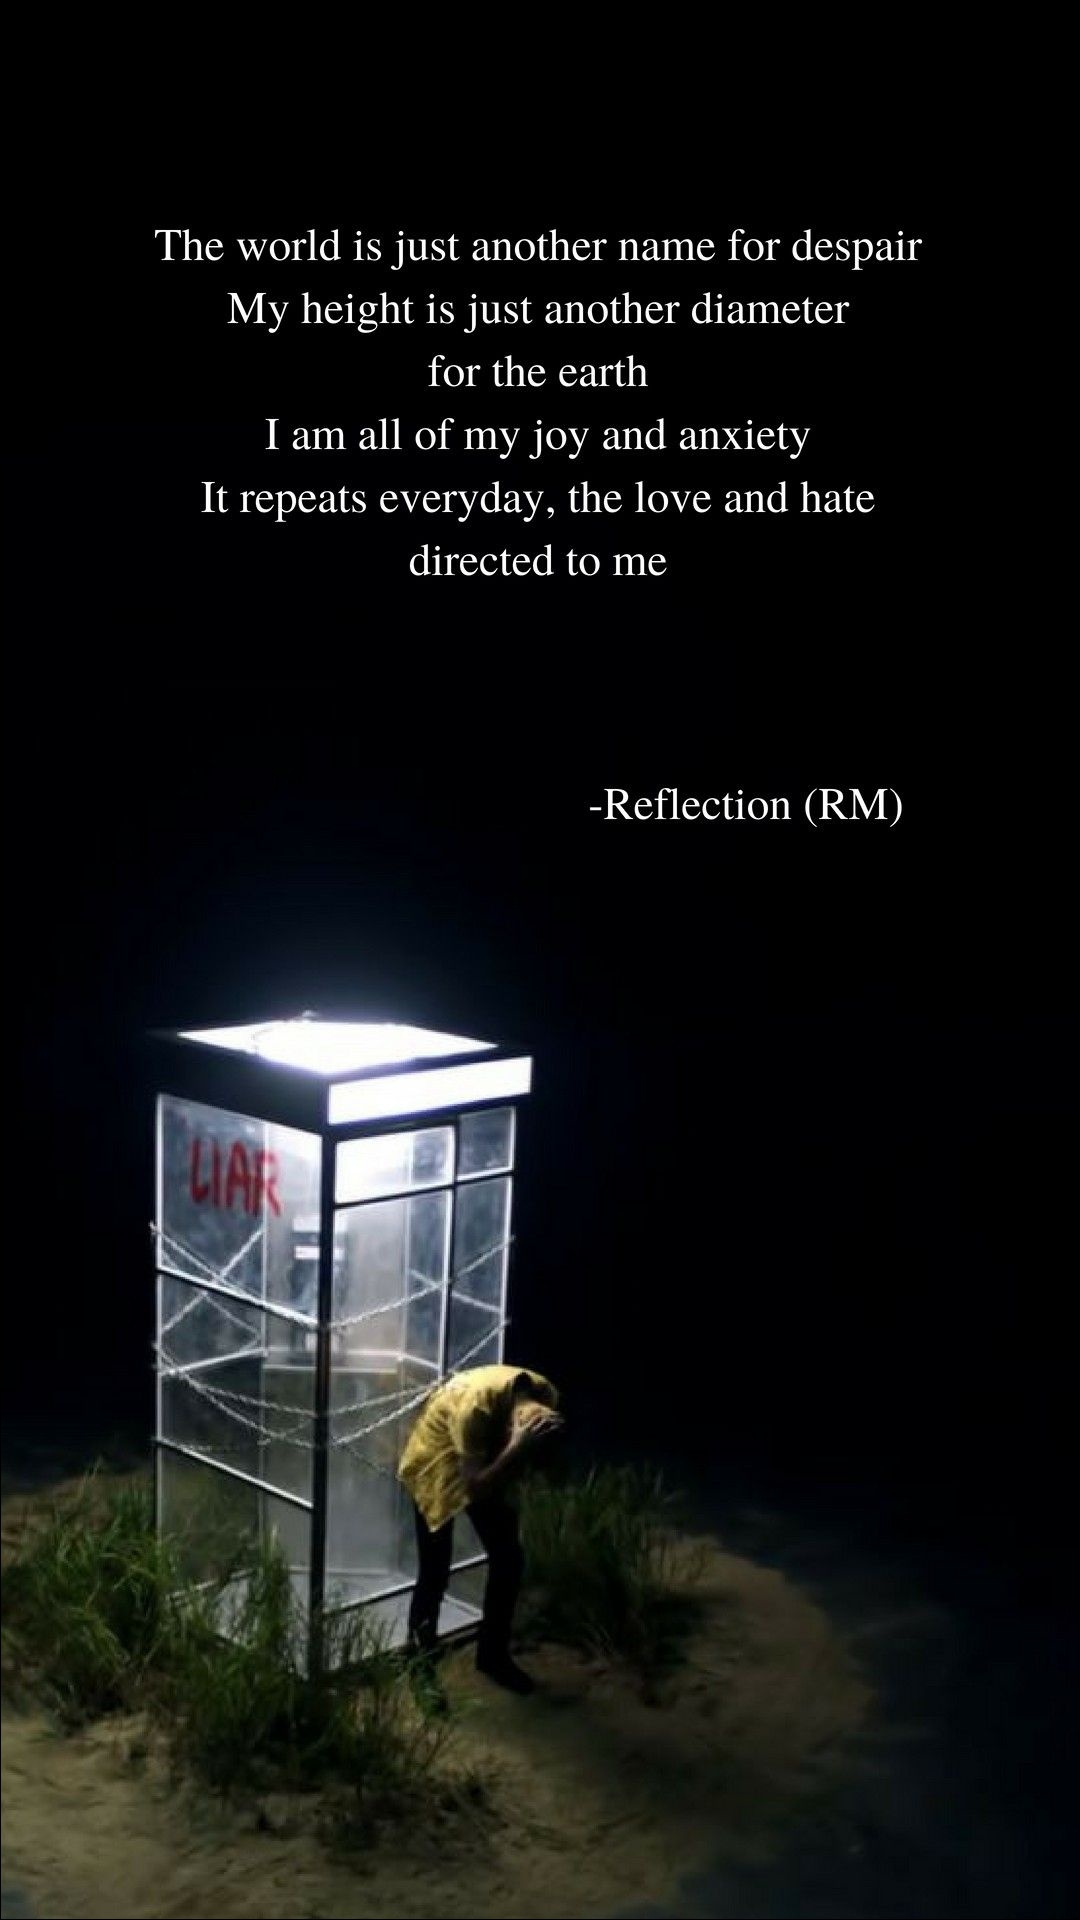 57 575369 reflection rm bts lyrics wallpaper wish i could